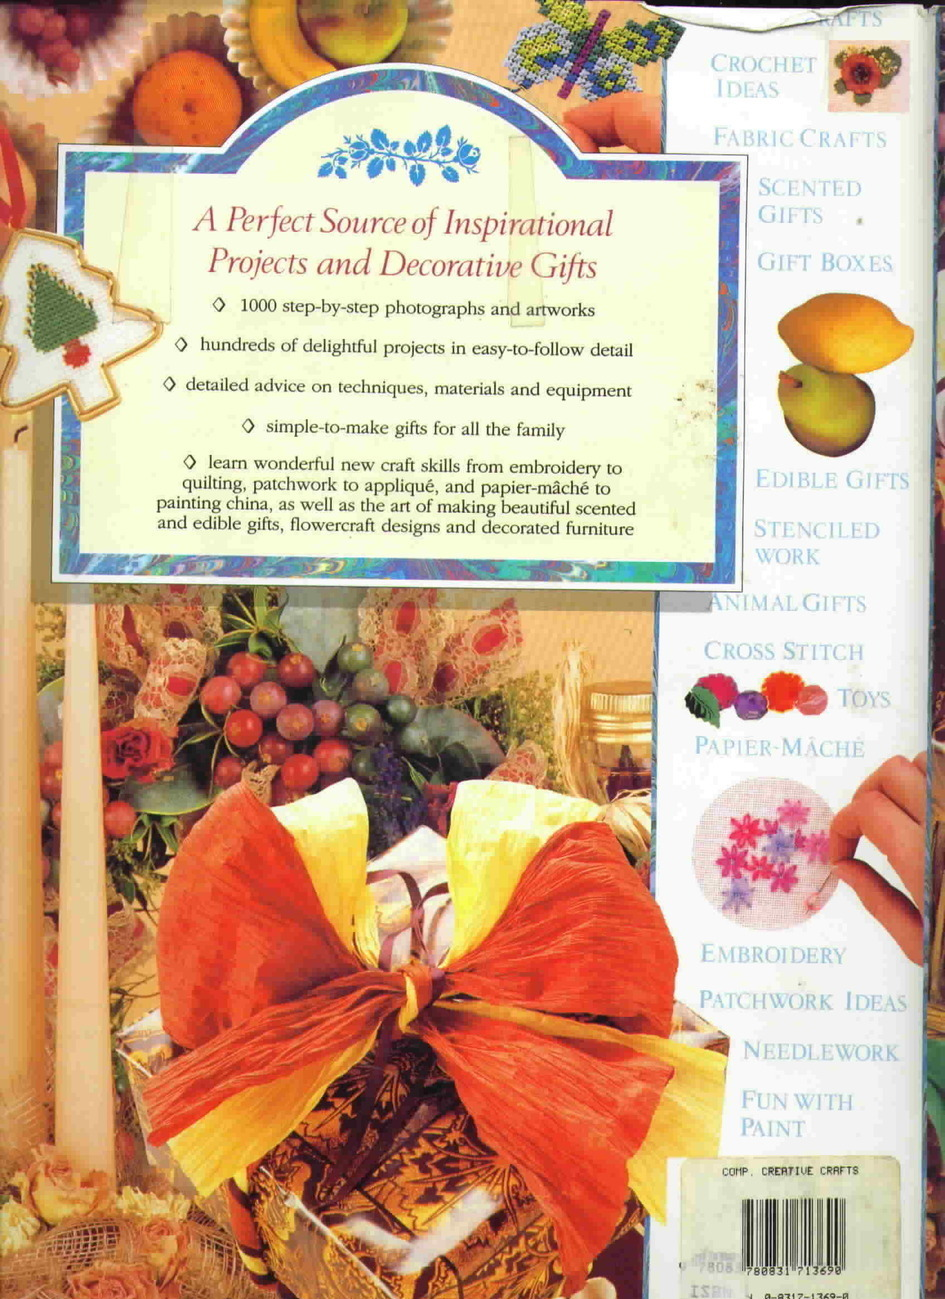 The Complete Book of Creative Crafts, Decorative Gifts, Inspirational Projects